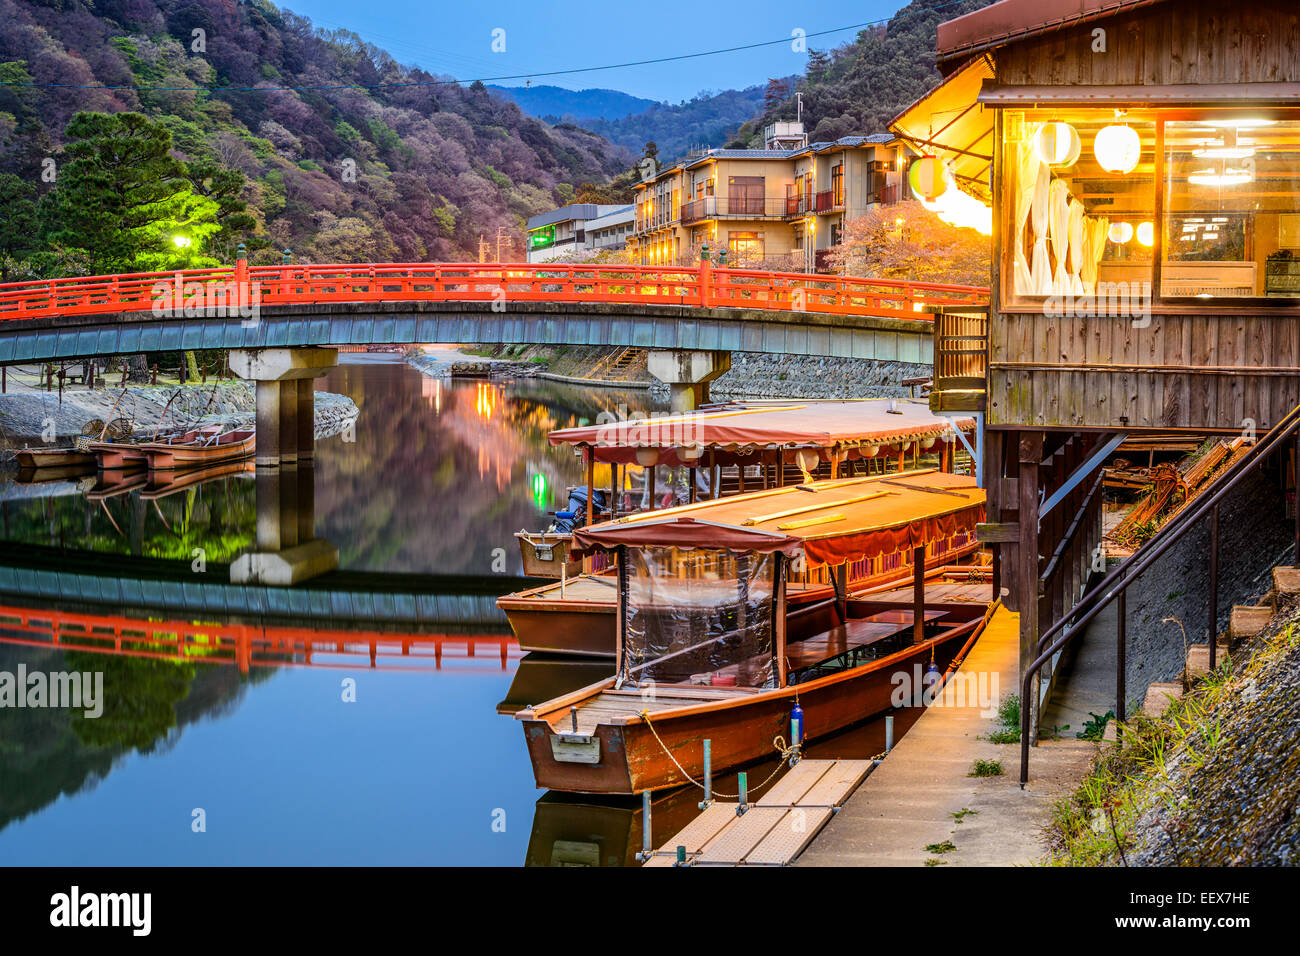 Uji, Kyoto Prefecture, Japan on the Ujigawa River. - Stock Image